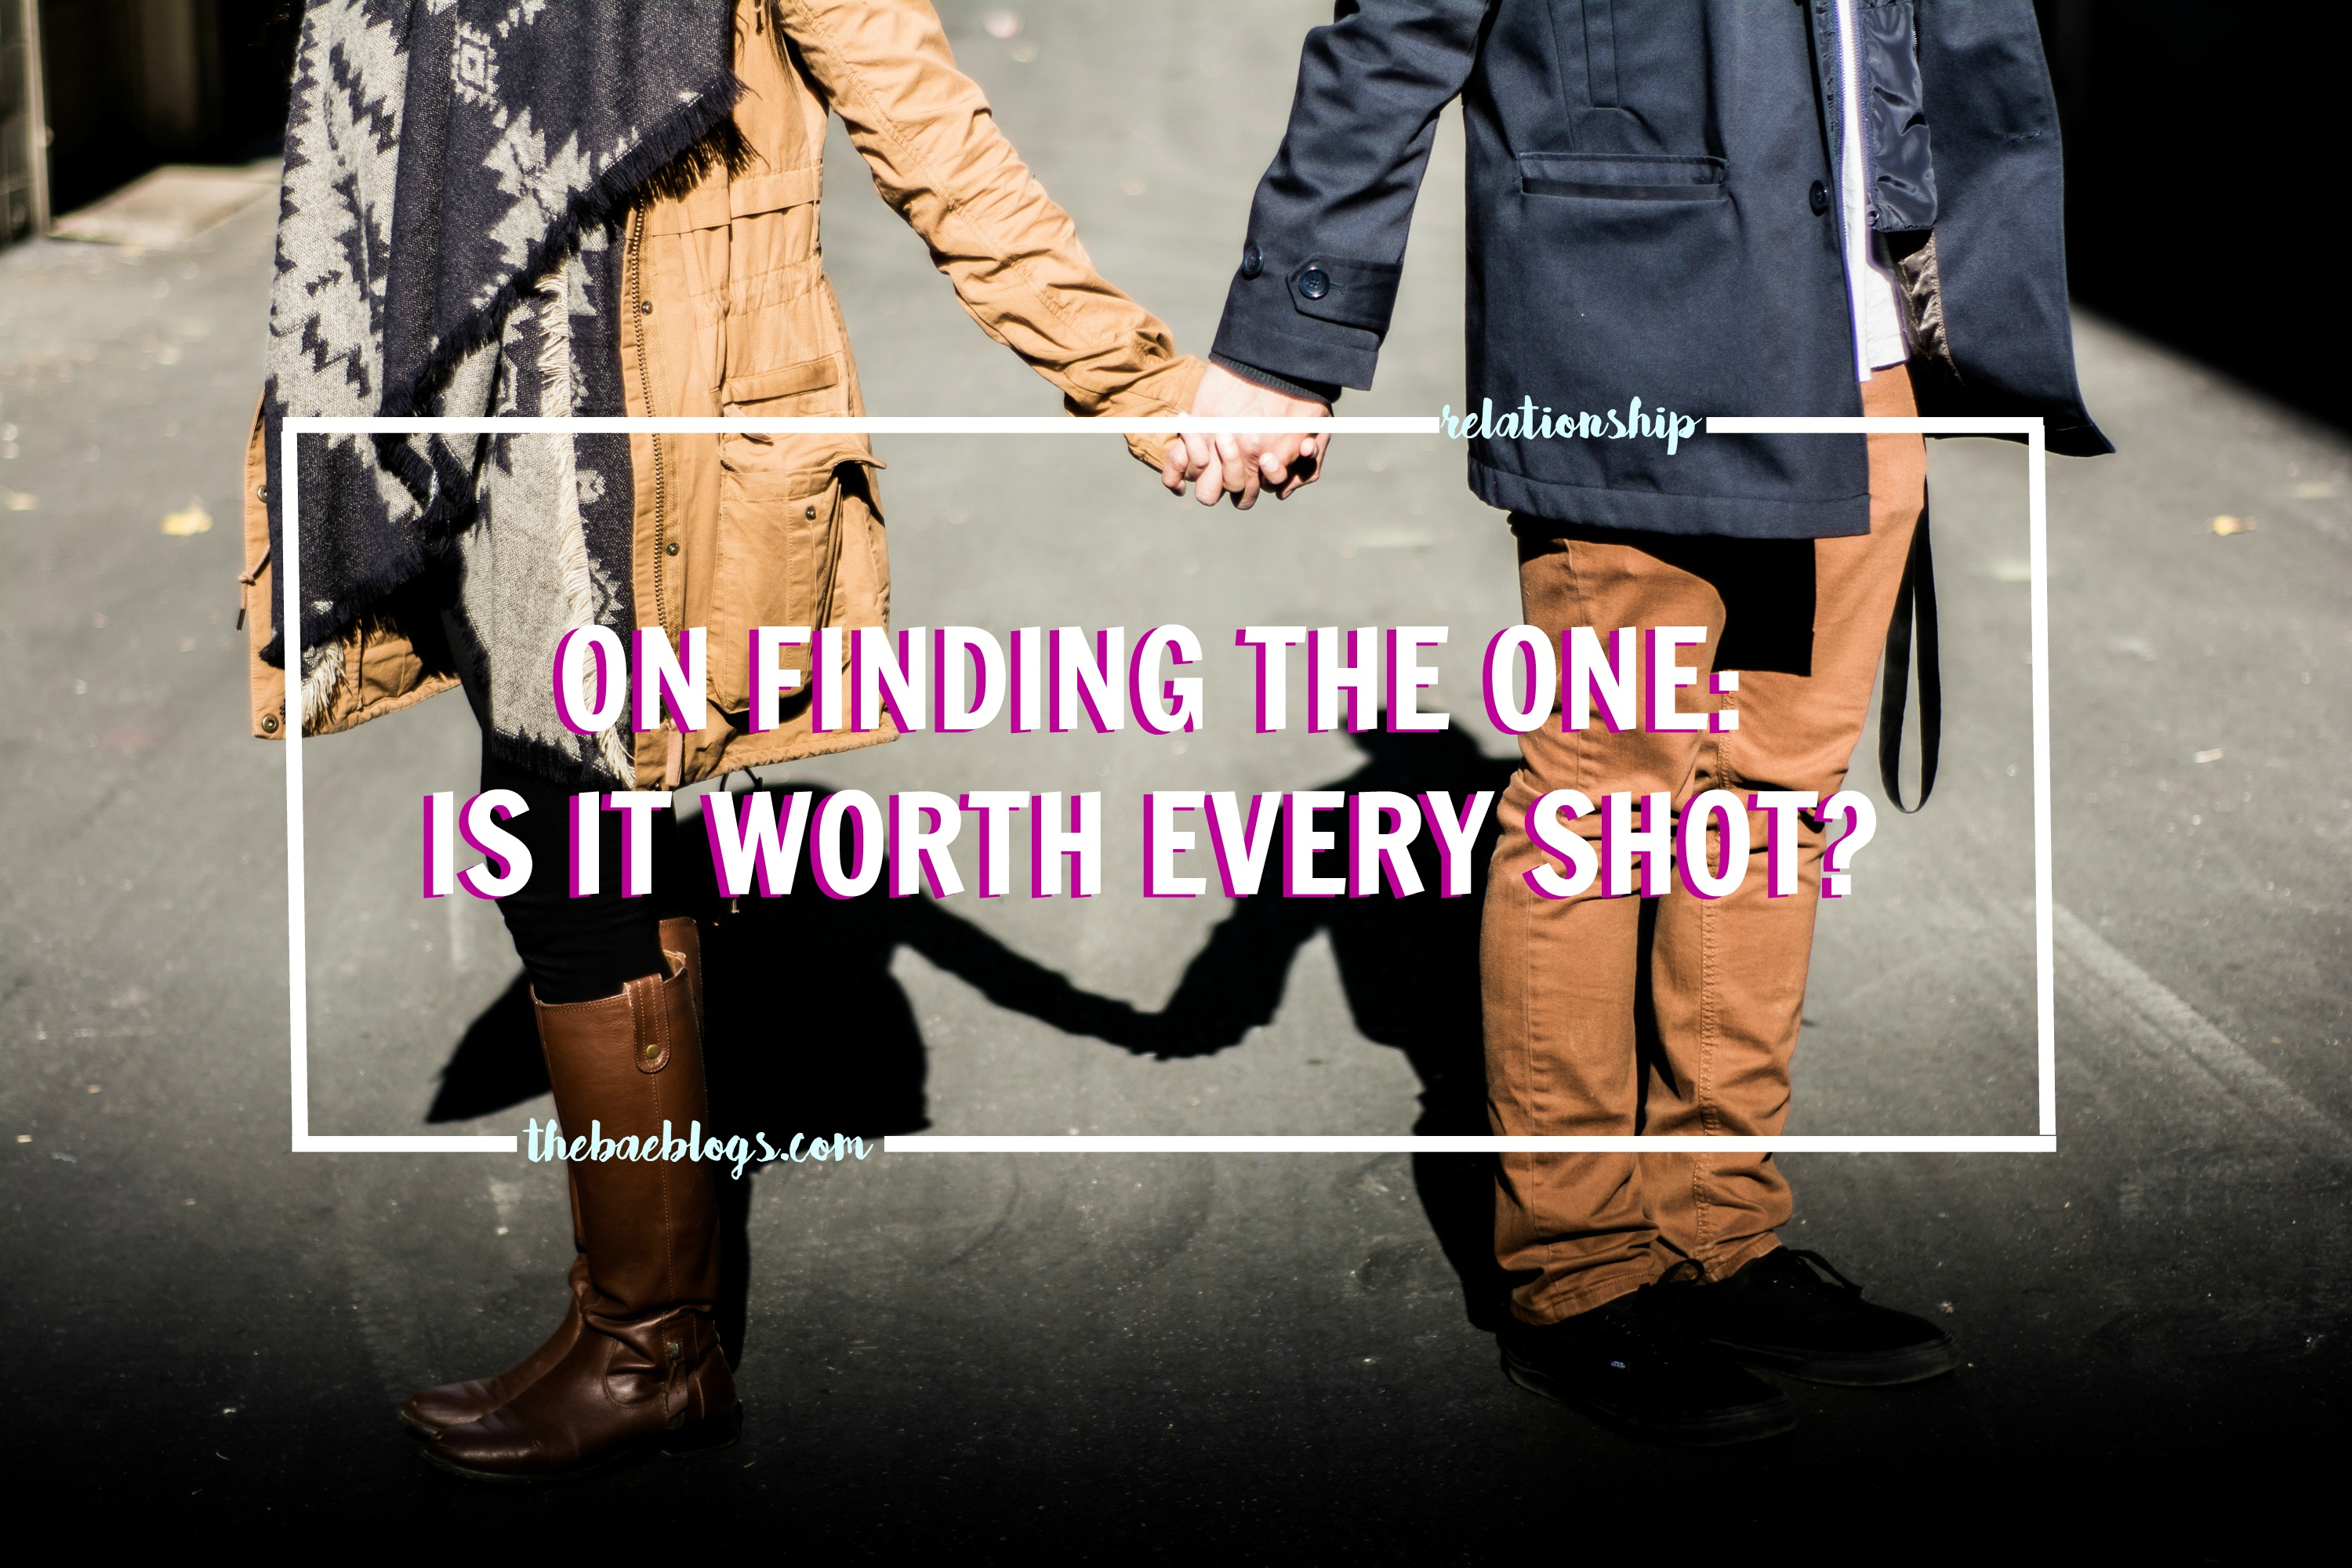 on-finding-the-one-is-it-worth-every-shot